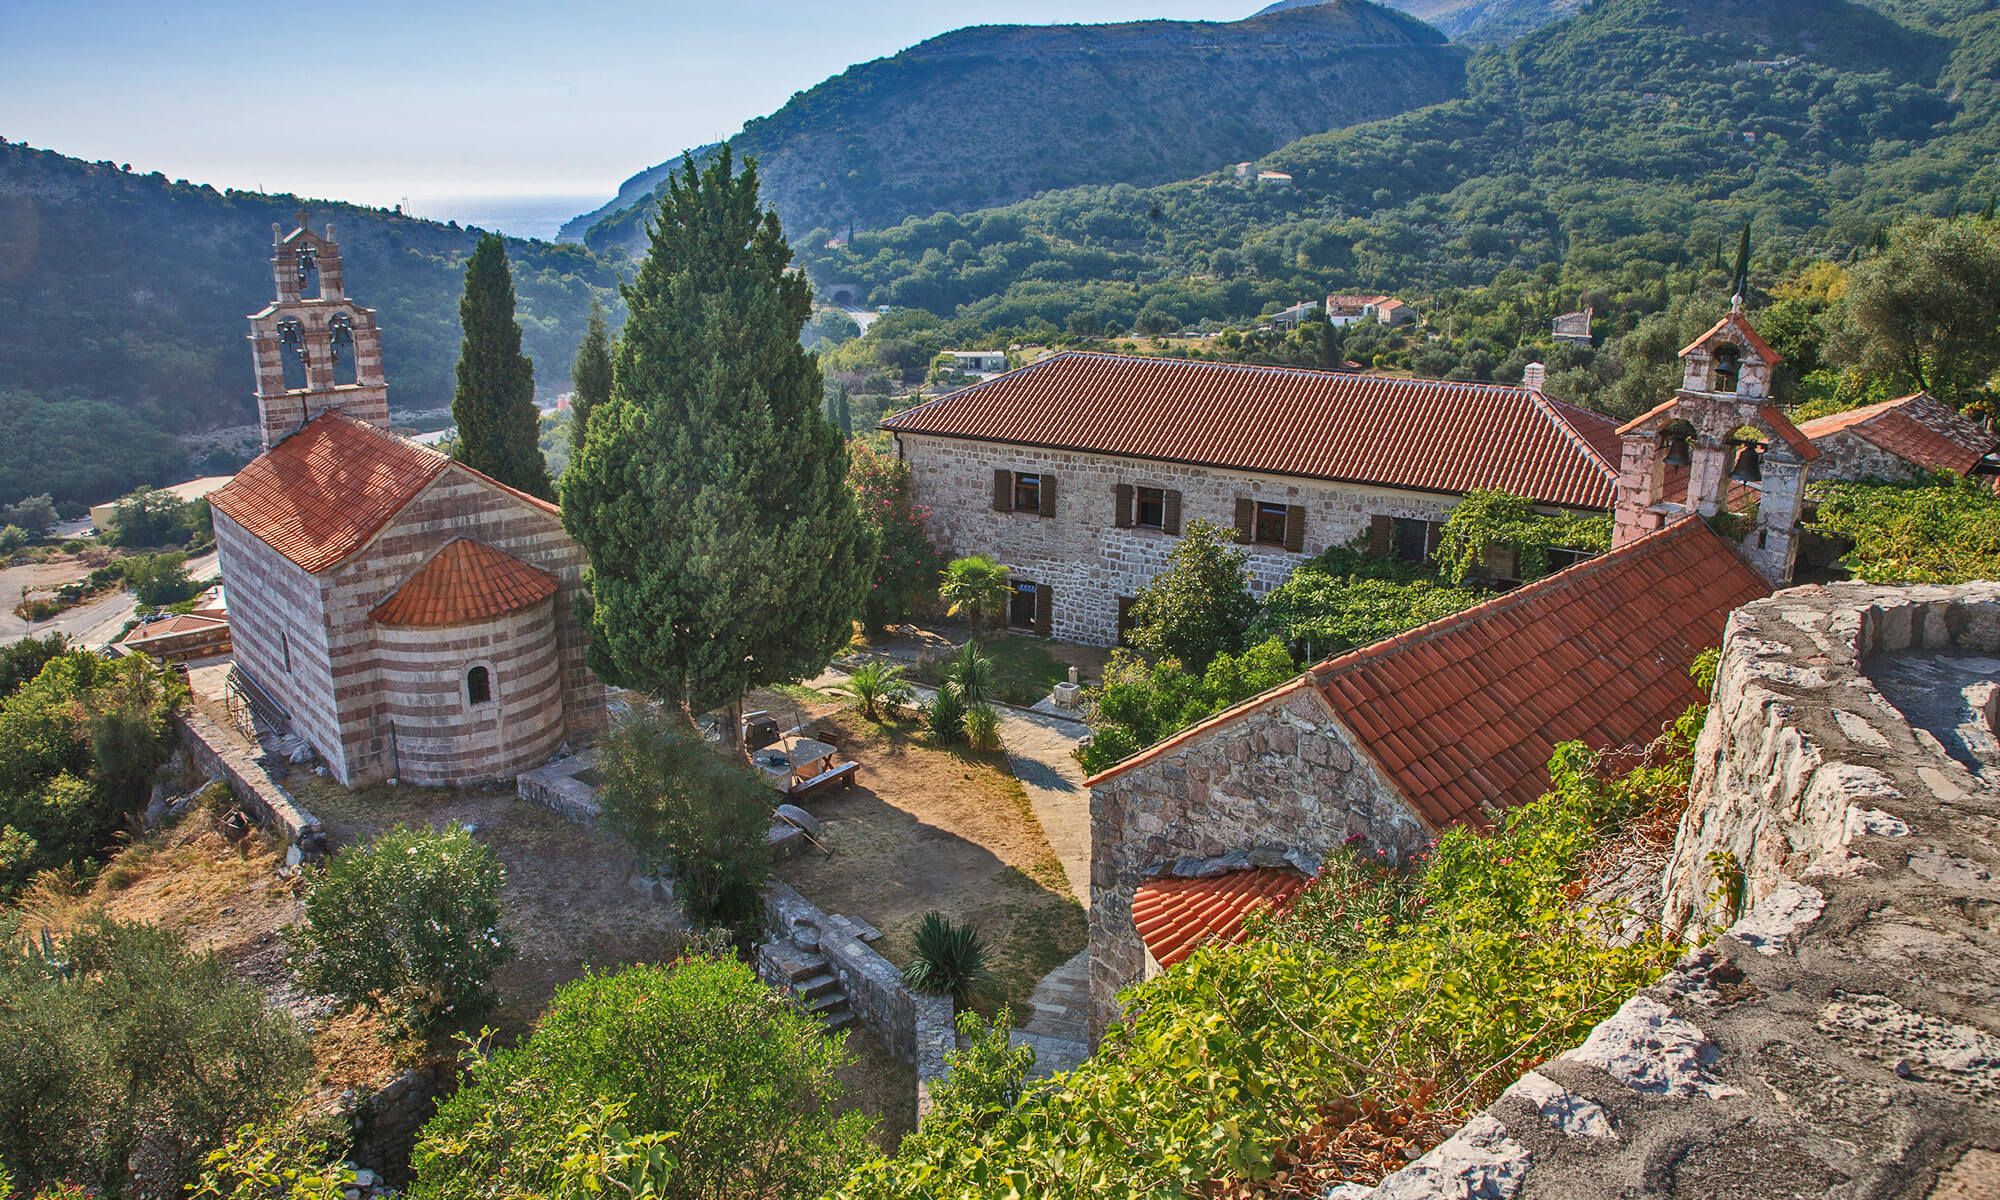 budva budva-old-town budva-beach budva-activities budva-hostels